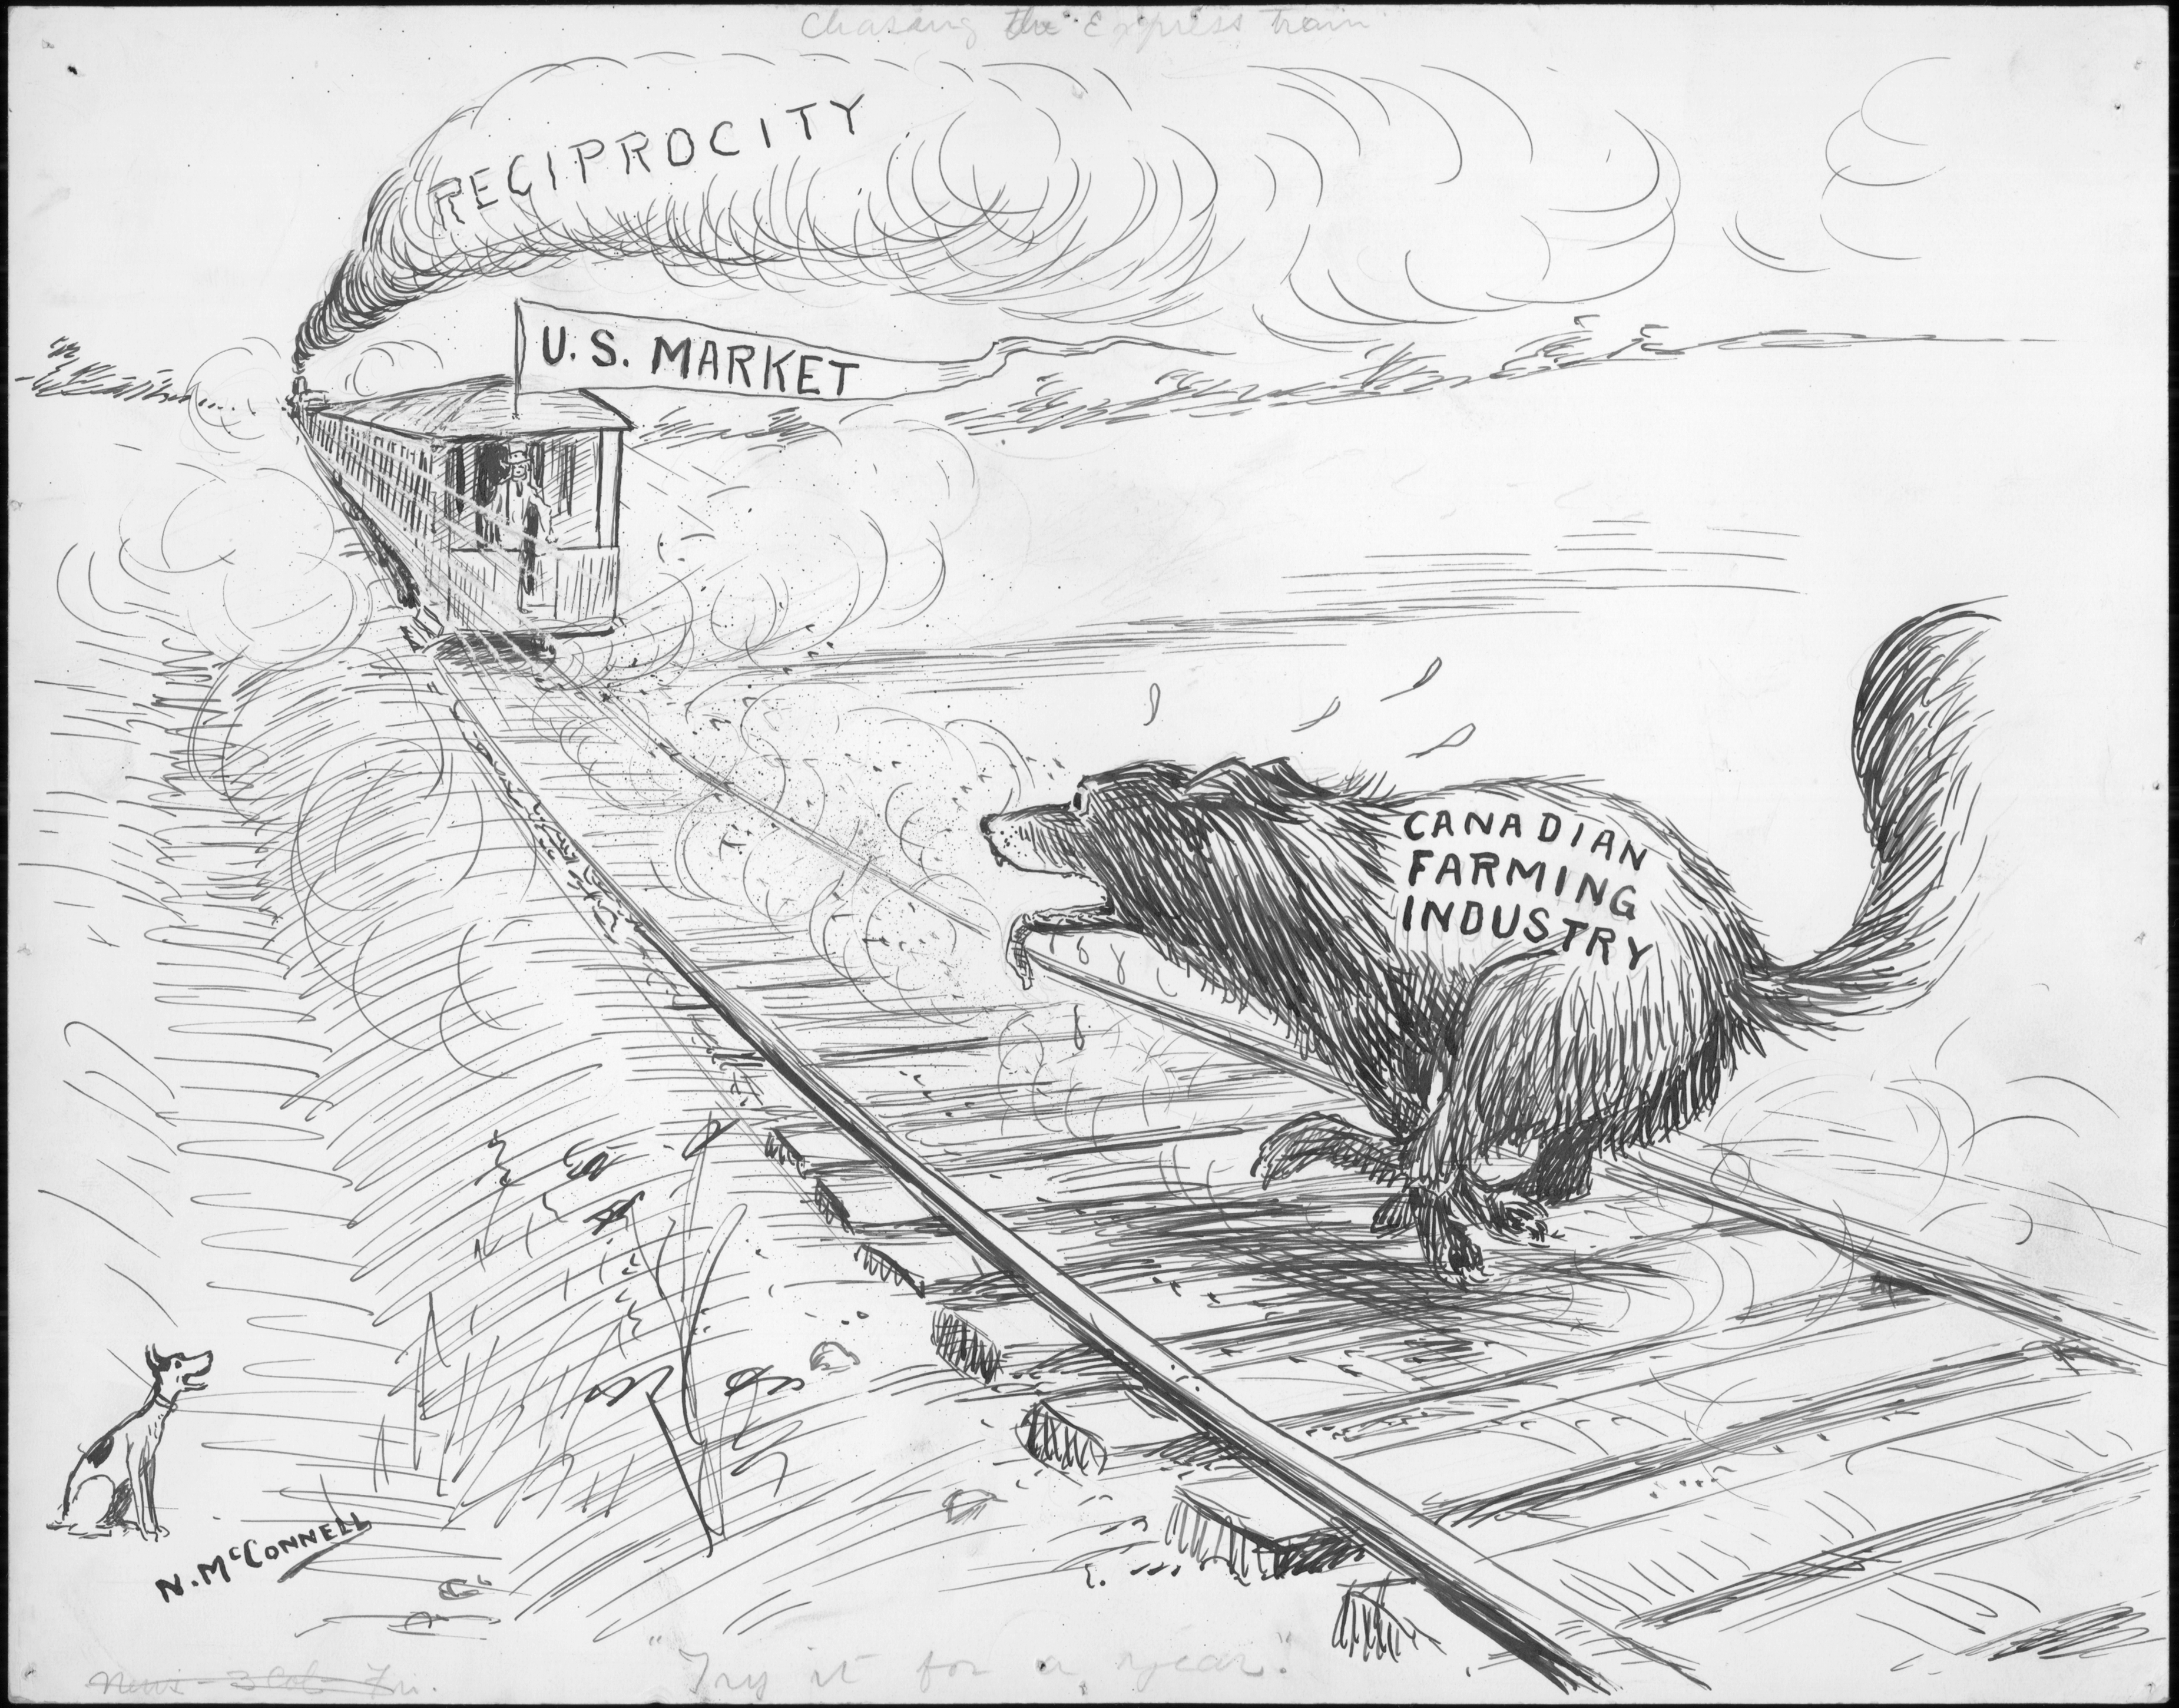 """Drawing of a train being chased by a beaver. In the top left half of the cartoon there is a train that is receding into the distance. The word """"RECIPROCITY"""" is written into the smoke from the locomotive. A banner with the words """"U.S. MARKET"""" is being waived by an indistinct figure at the back of the train. The train rails run diagonally towards the bottom right of the drawing and off page. A beaver is running on the rails on the bottom right part of the cartoon. The beaver's mouth is agape and sweat drops are visible around the beaver's head. On the bottom left, a small do is watching the scene. The caption written in cursive at the bottom of the cartoon reads """"""""TRY IT FOR A YEAR."""" NEWTON MCCONNELL. CIRCA 1911."""""""